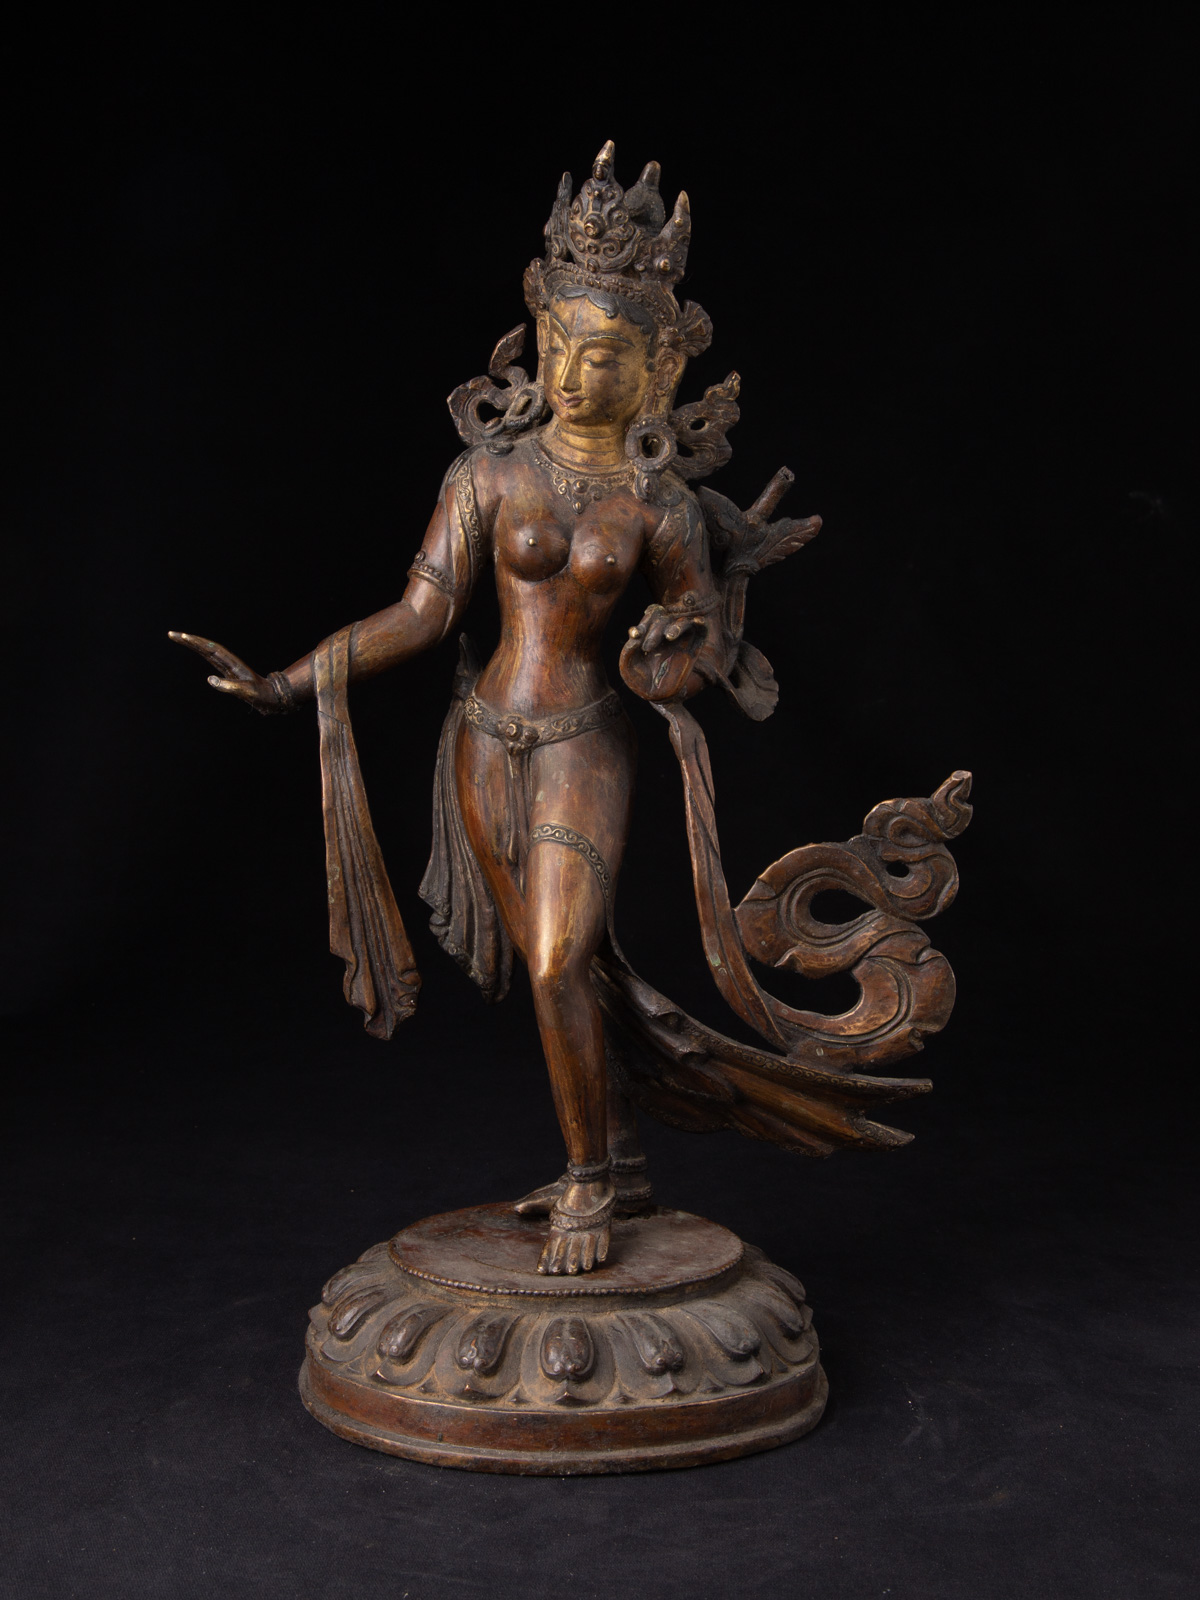 Antique bronze Tara statue from Nepal made from Bronze